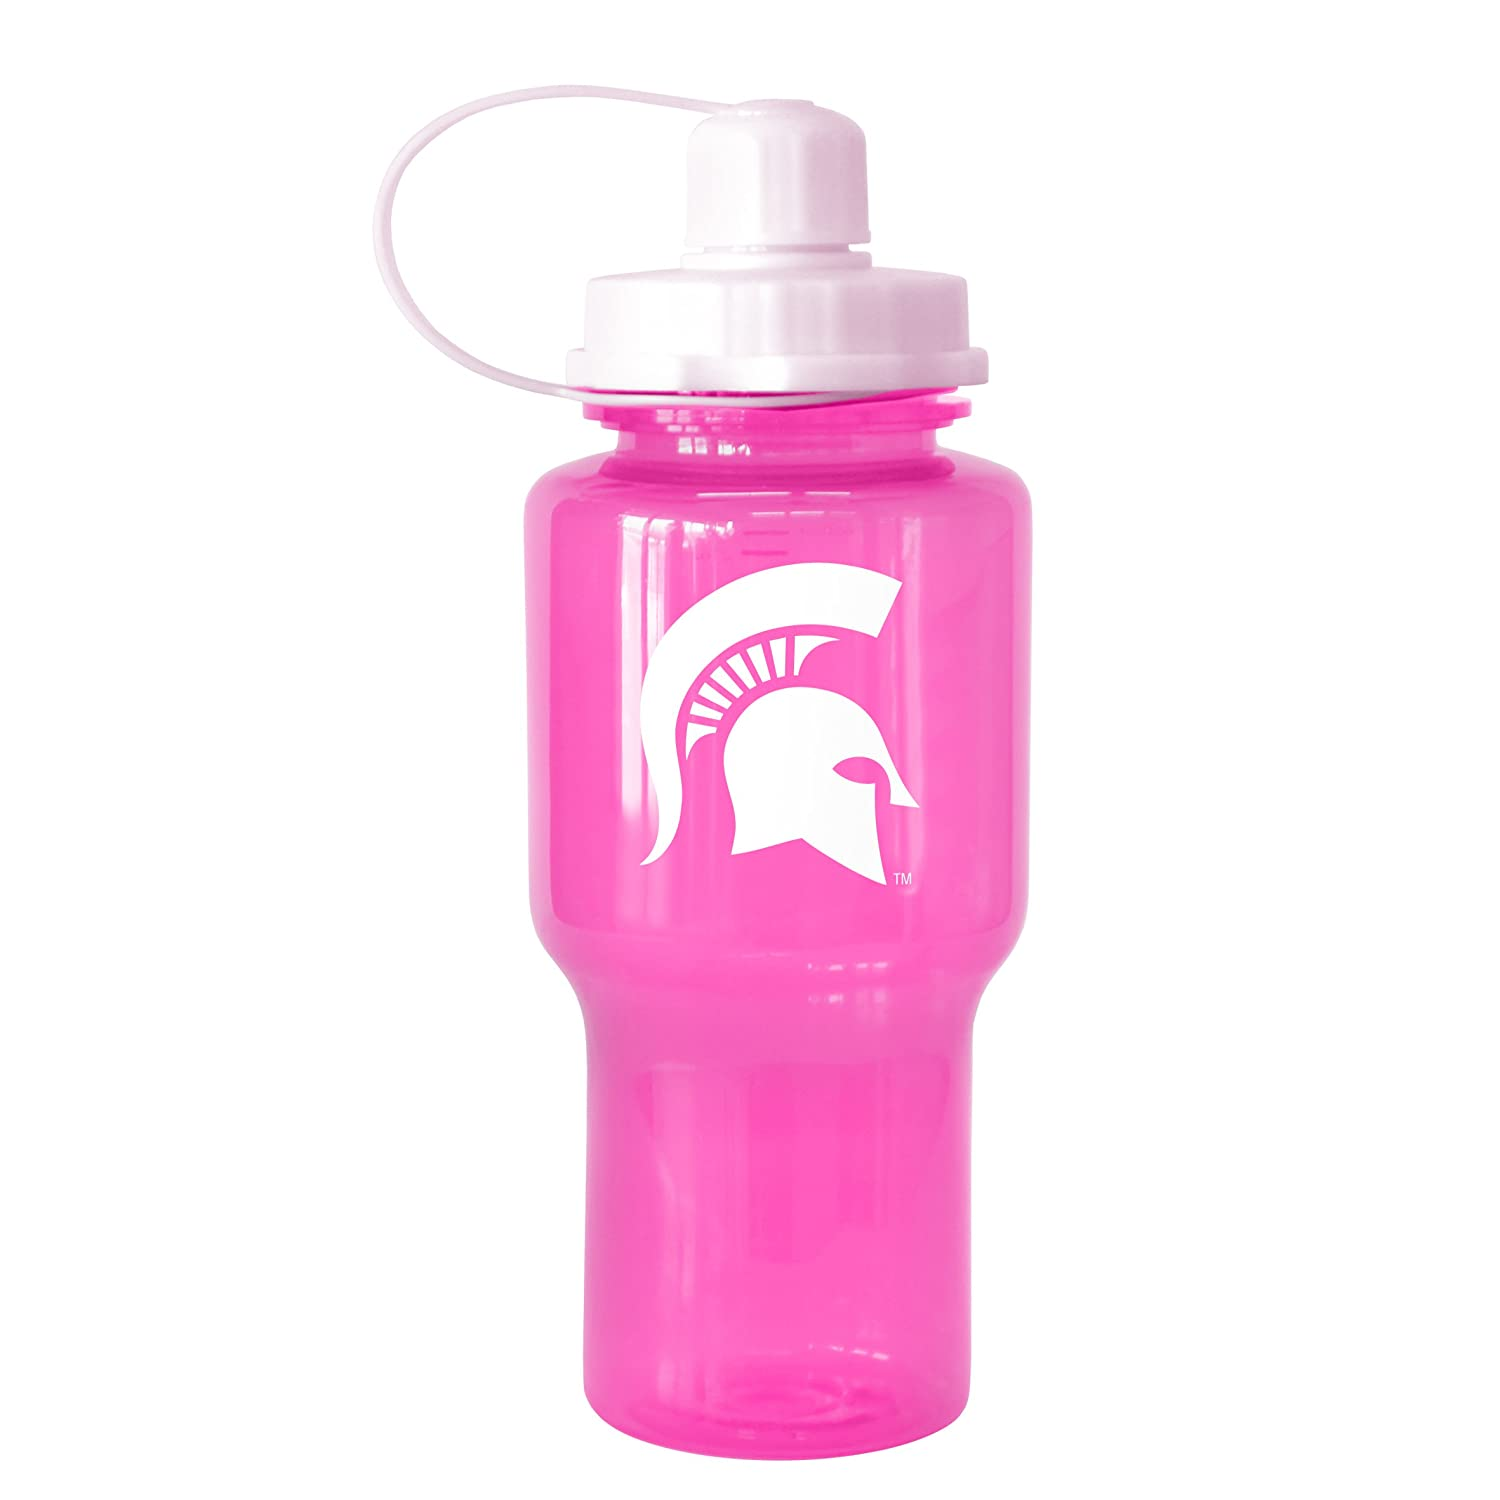 NCAA Michigan State Spartans Tritan Travel Mate Pink Water Bottle 24-Ounce Boelter Brands 282511